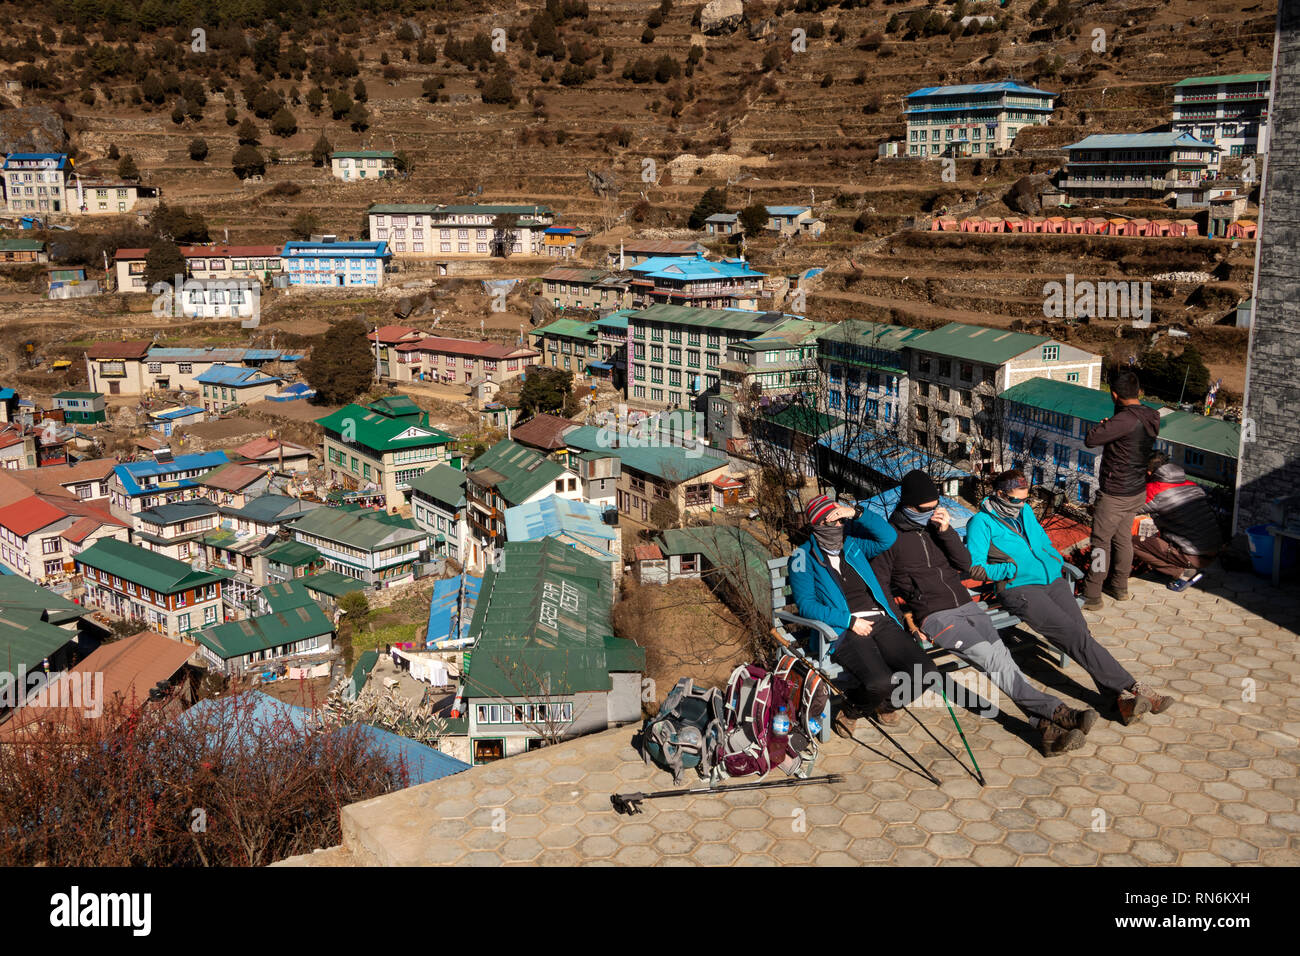 Nepal, Namche Bazaar, walkers wearing cold weather clothing resting on seat in sunshine with elevated view of town - Stock Image